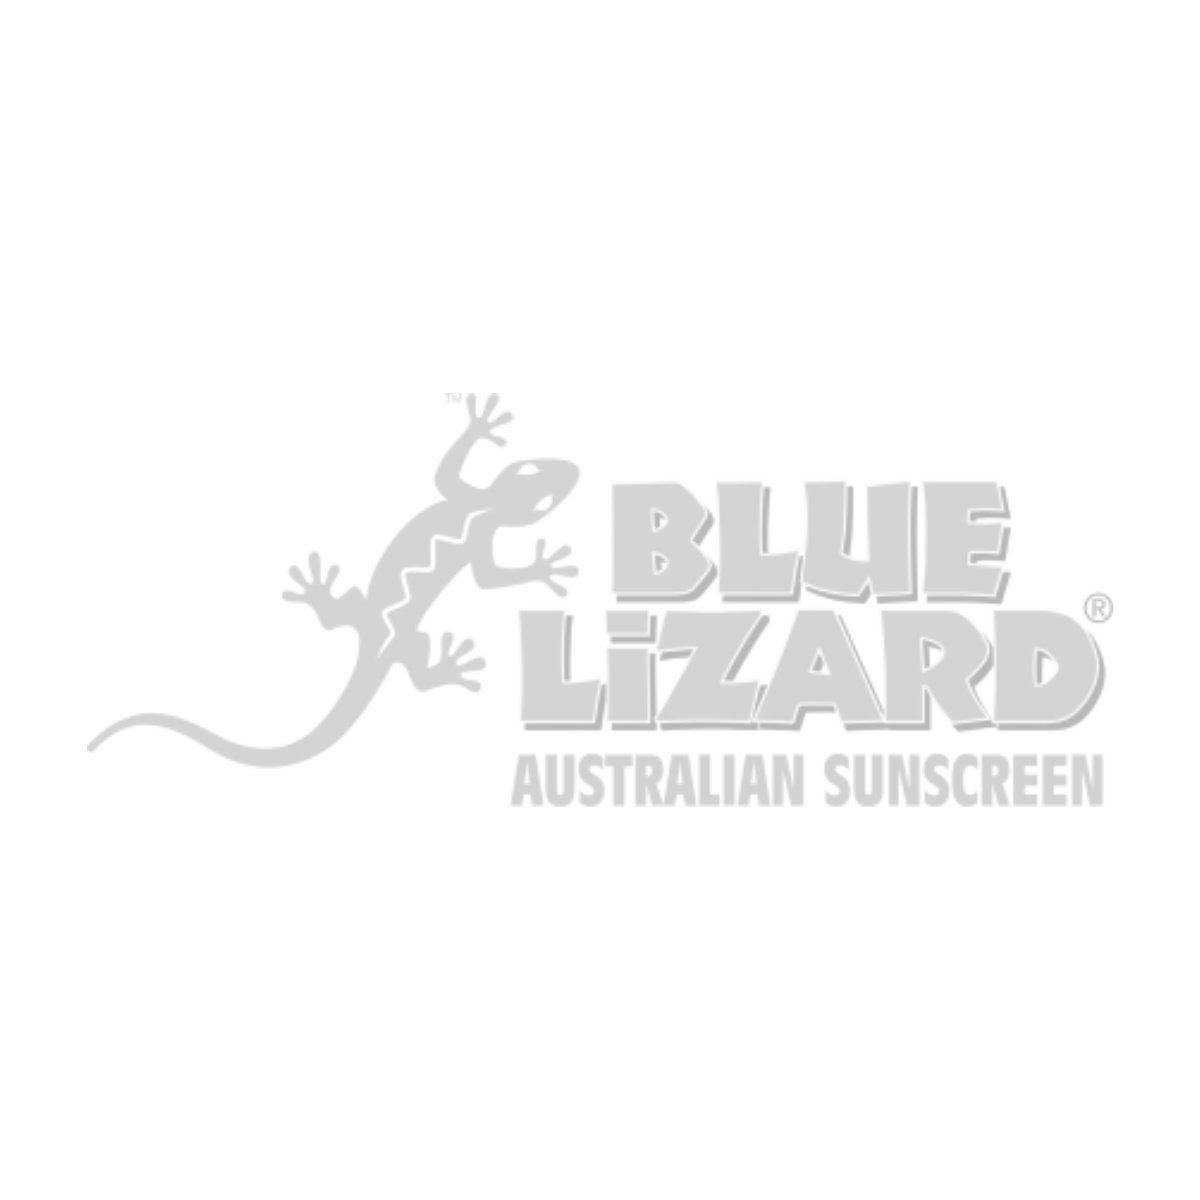 bluelizardlogo